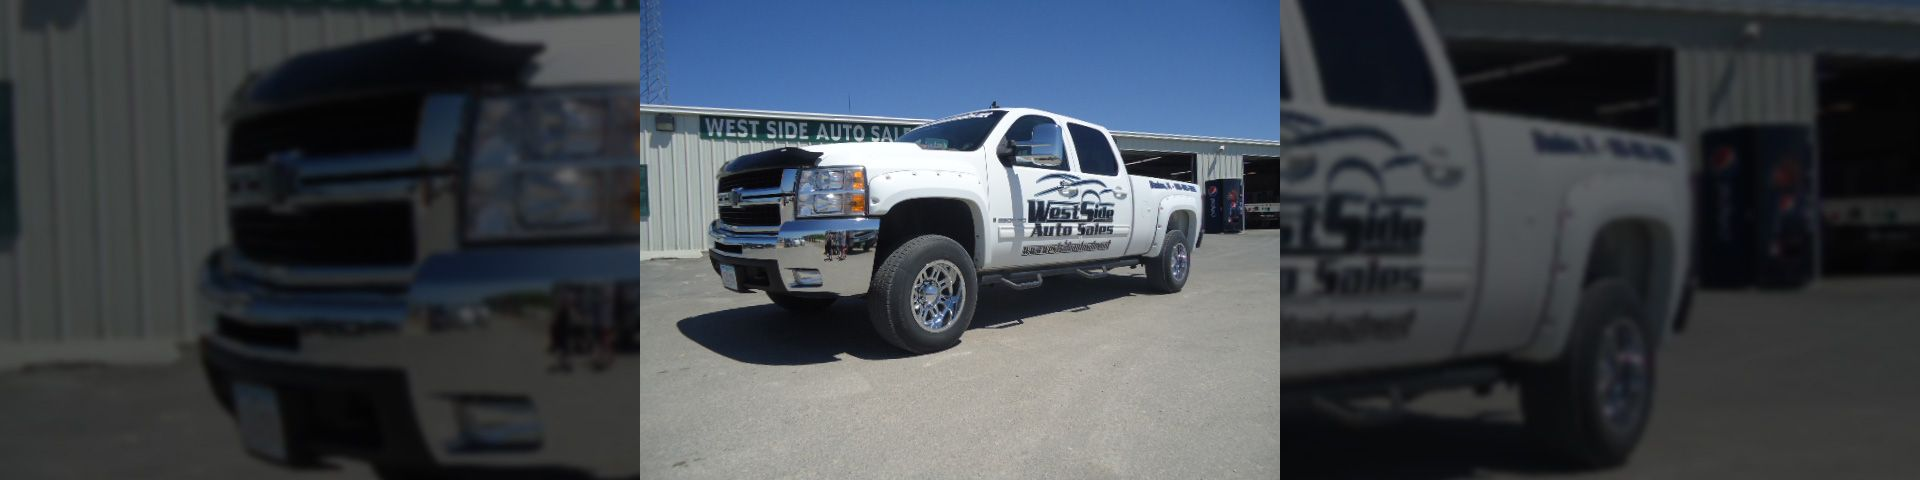 Used & Pre-Owned Car & Truck Dealer in Waukon, IA - West